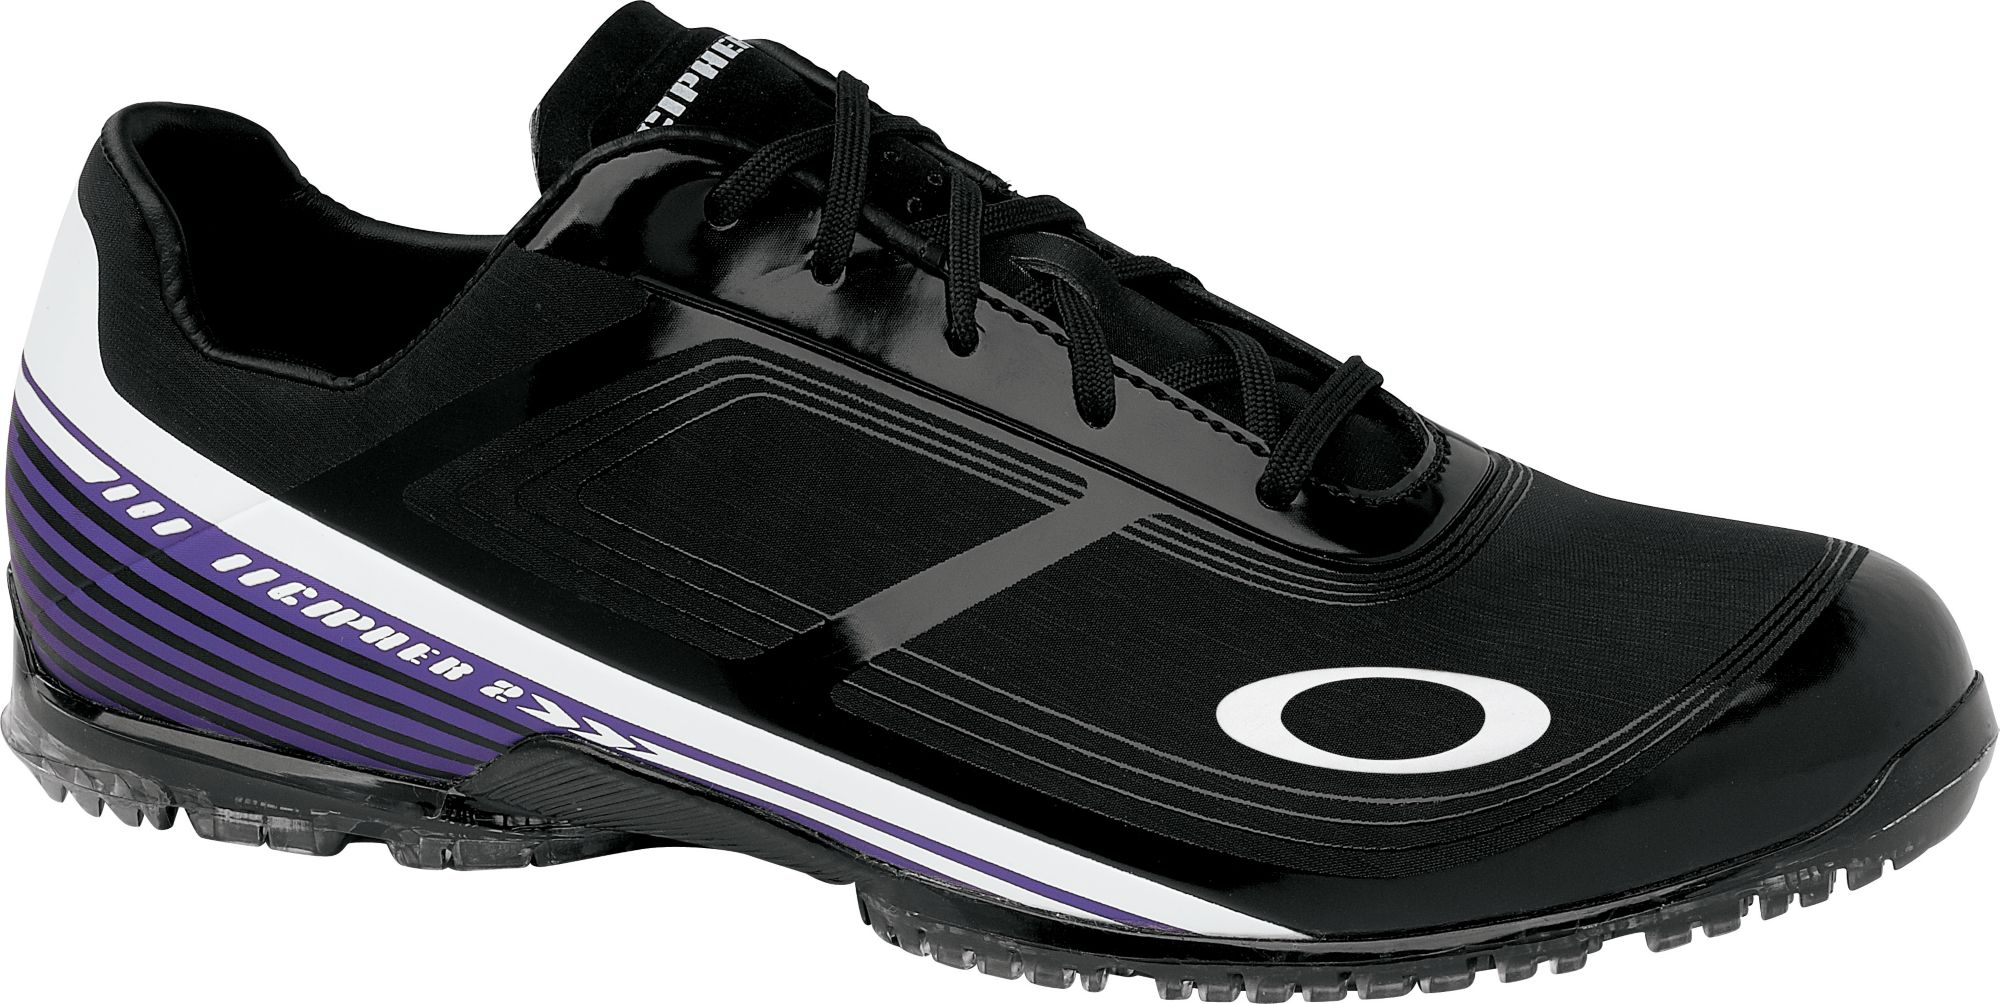 Oakley Shoes P4q5